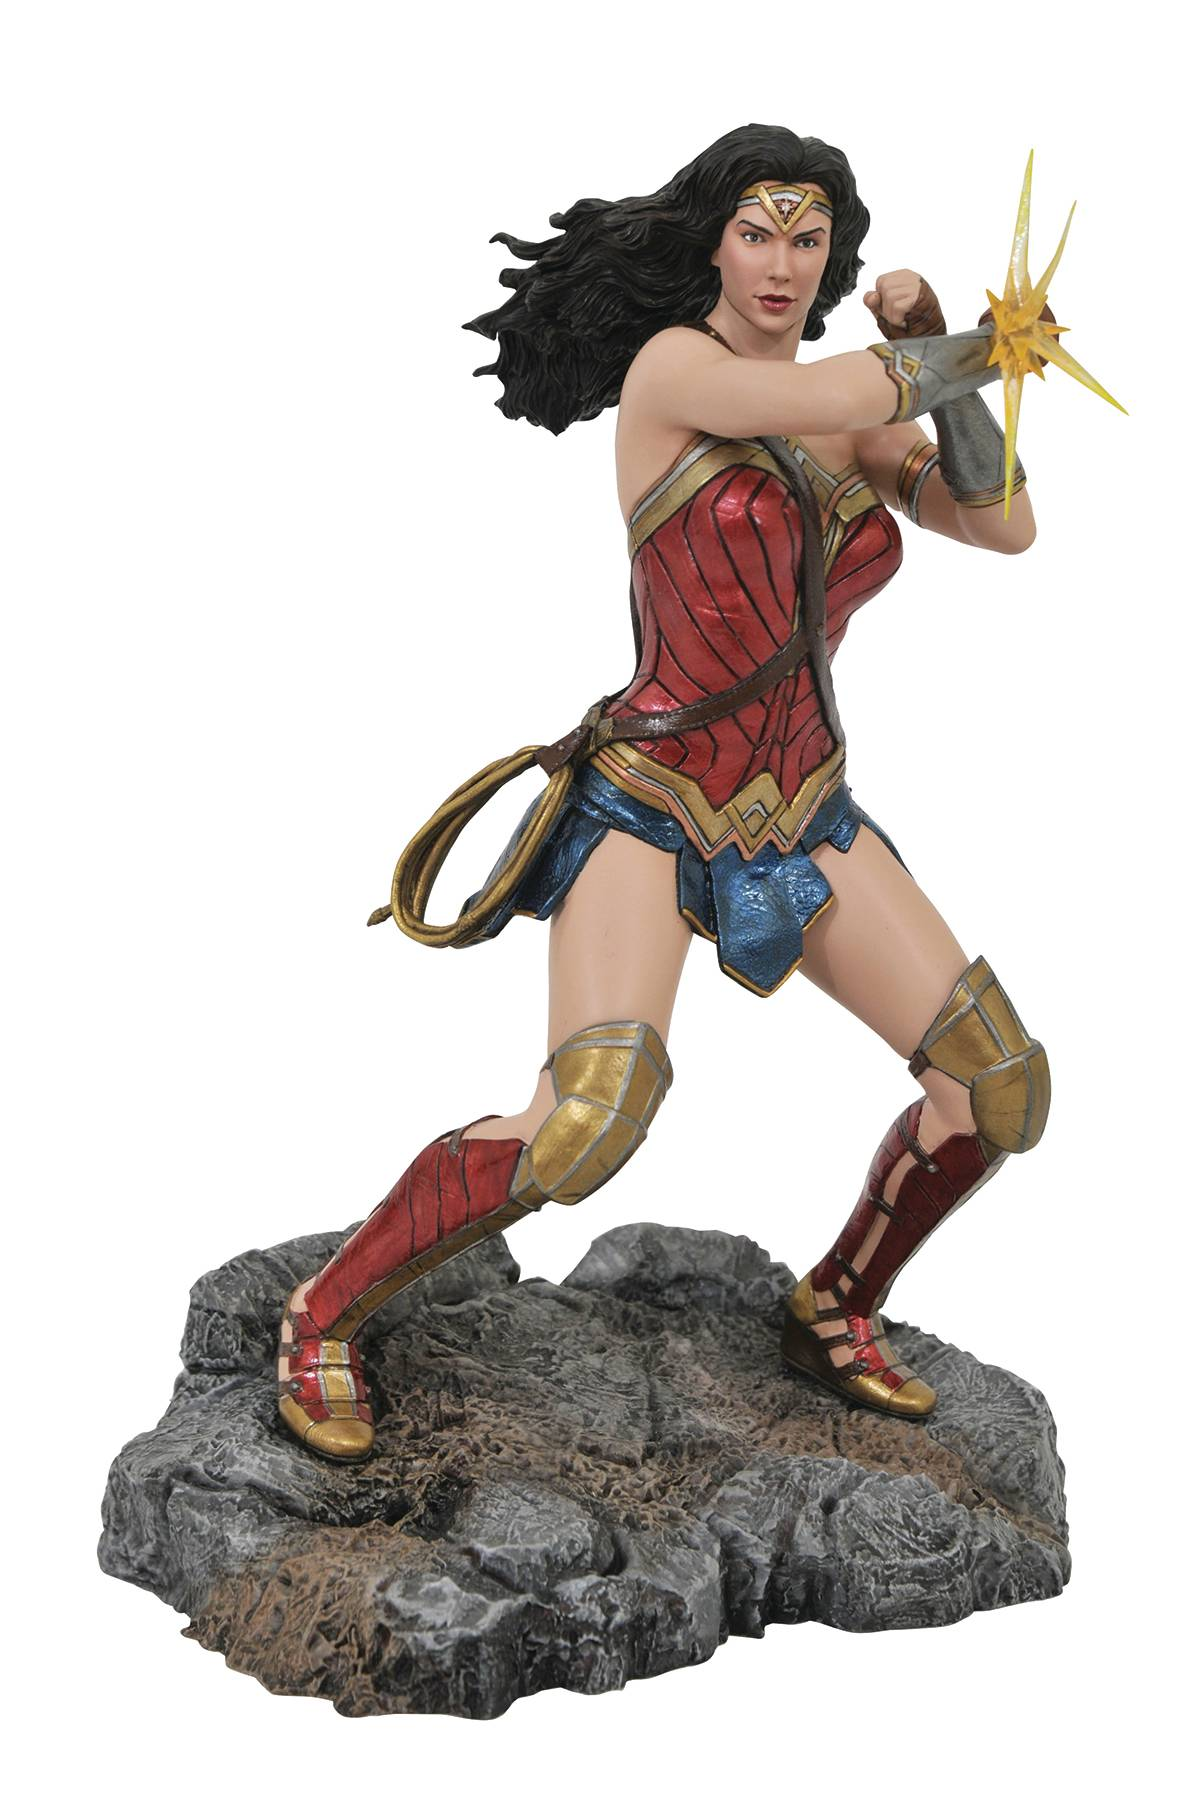 DC GALLERY JL MOVIE WONDER WOMAN BRACELETS PVC FIGURE